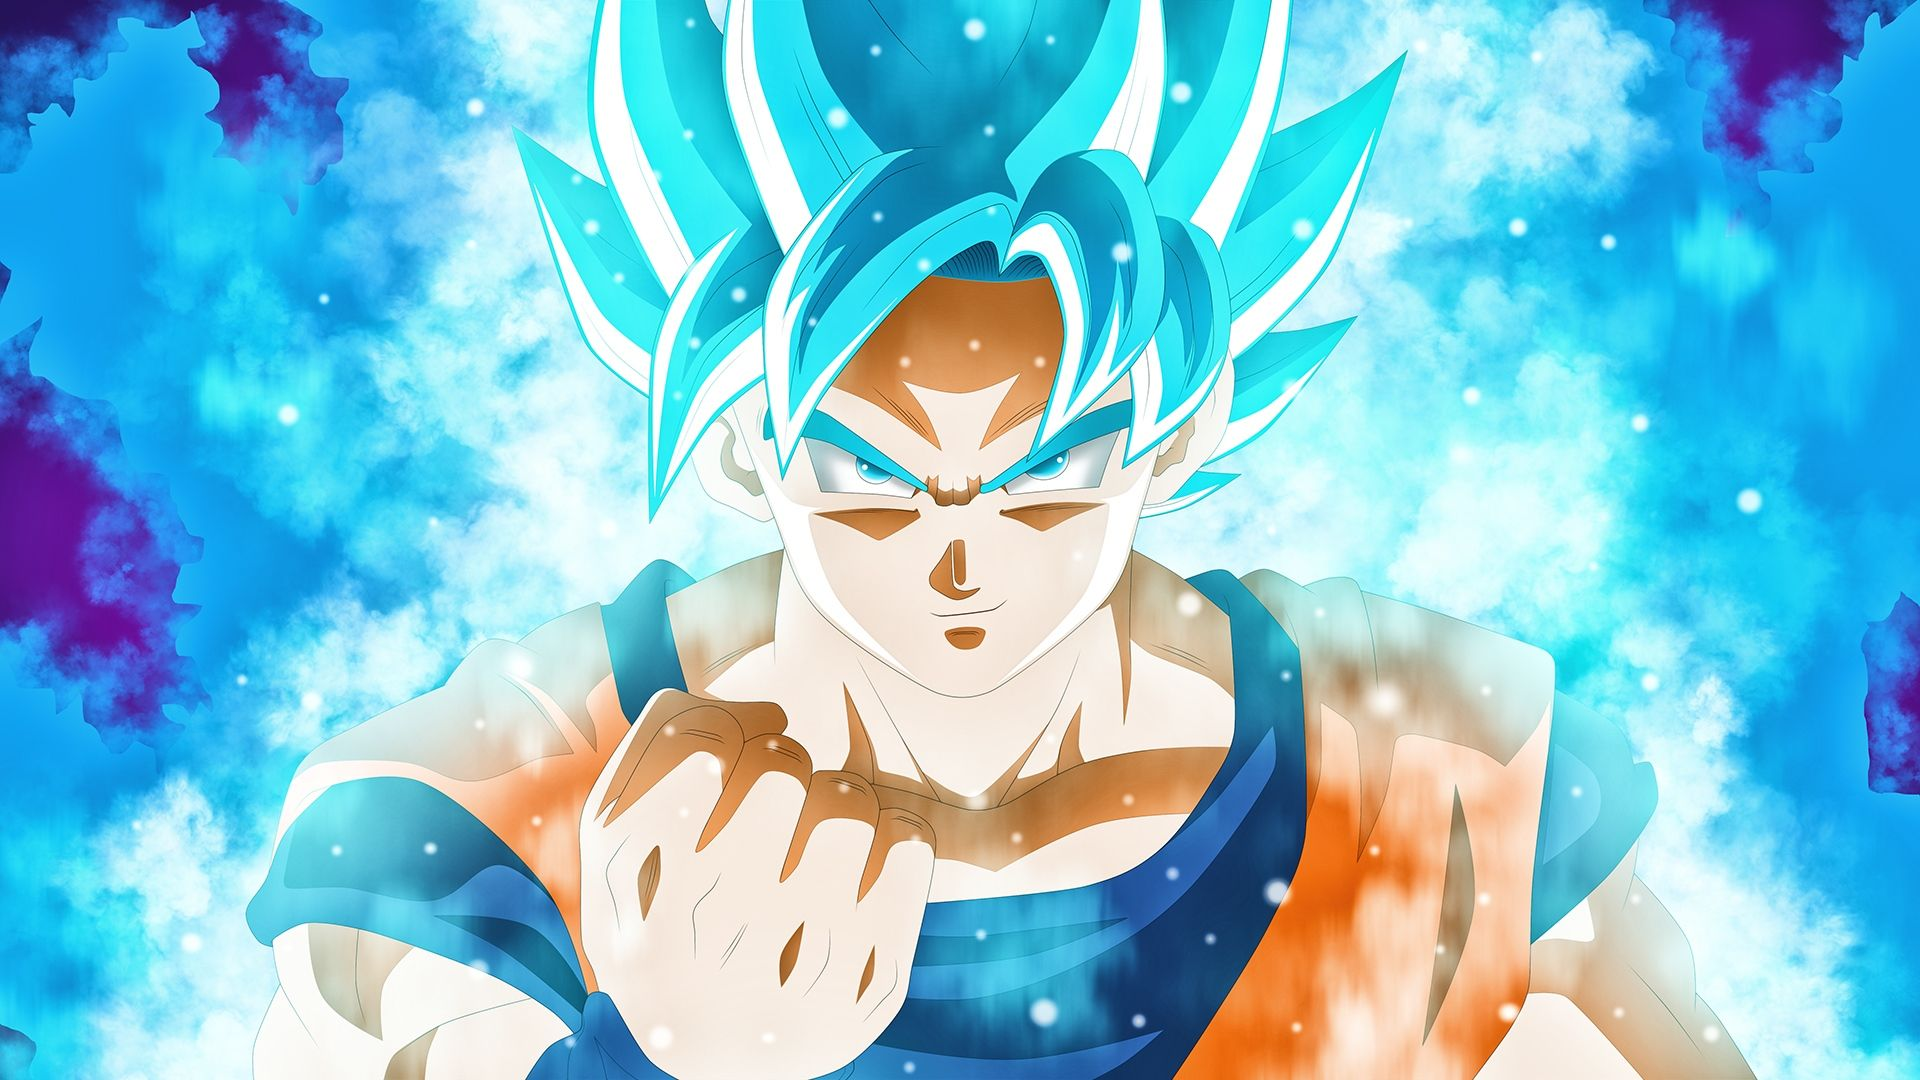 Goku Super Saiyan Blue Dragon Ball Super Anime Anime 1920x1080 Goku Wallpaper Goku Super Saiyan Blue Goku Super Saiyan Wallpapers